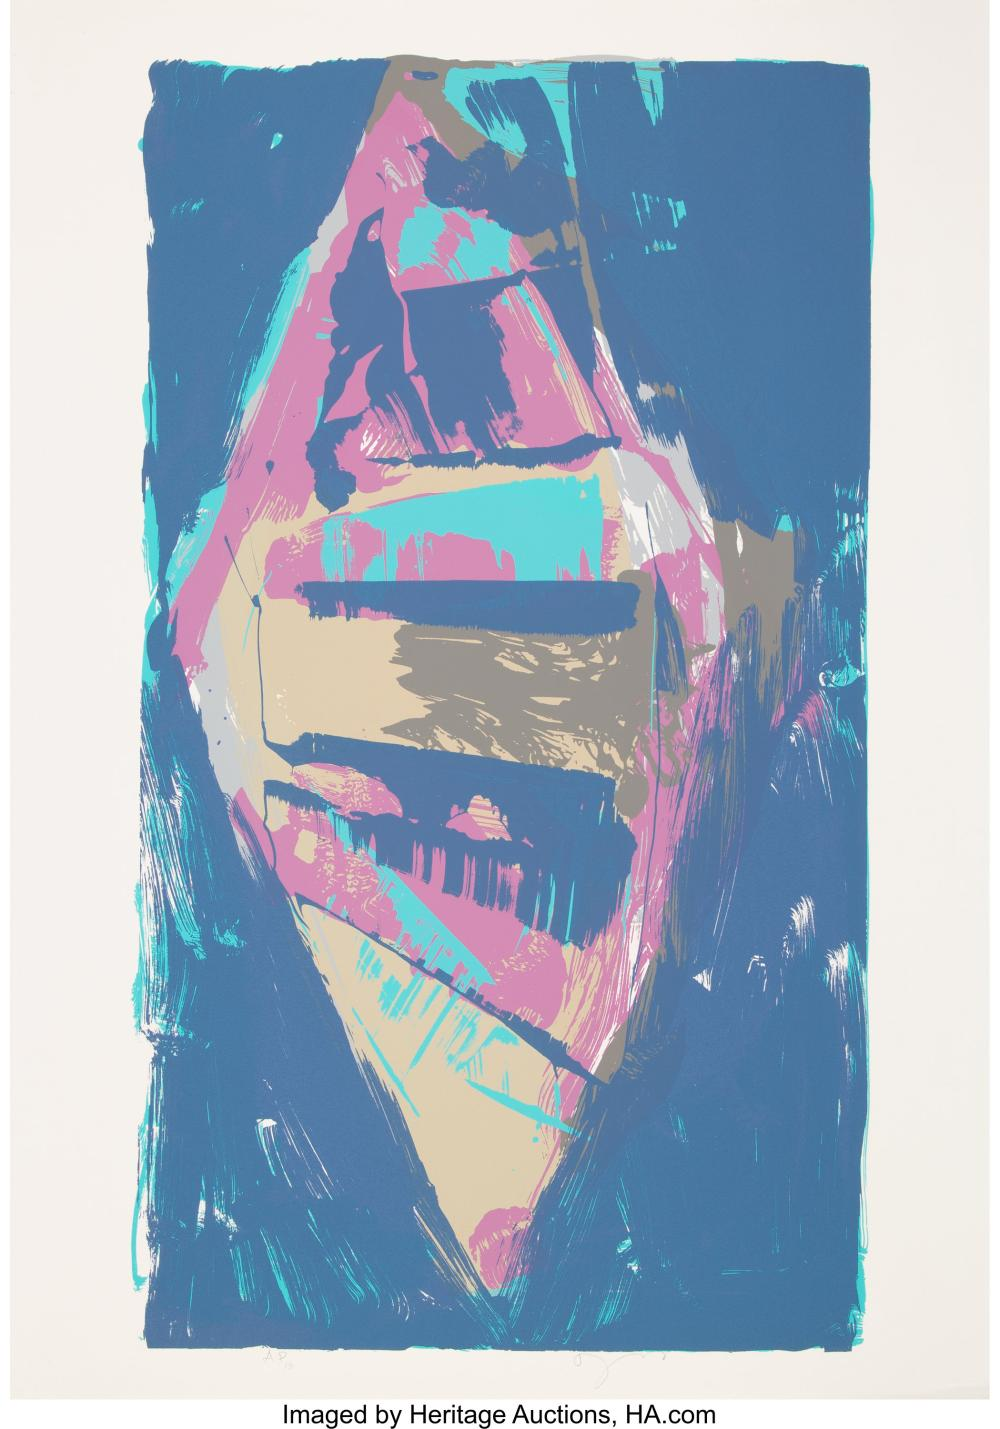 Lot 21323: Darryl Hughto (b. 1943) Starting Over, c. 1982 Serigraph in colors on wove paper